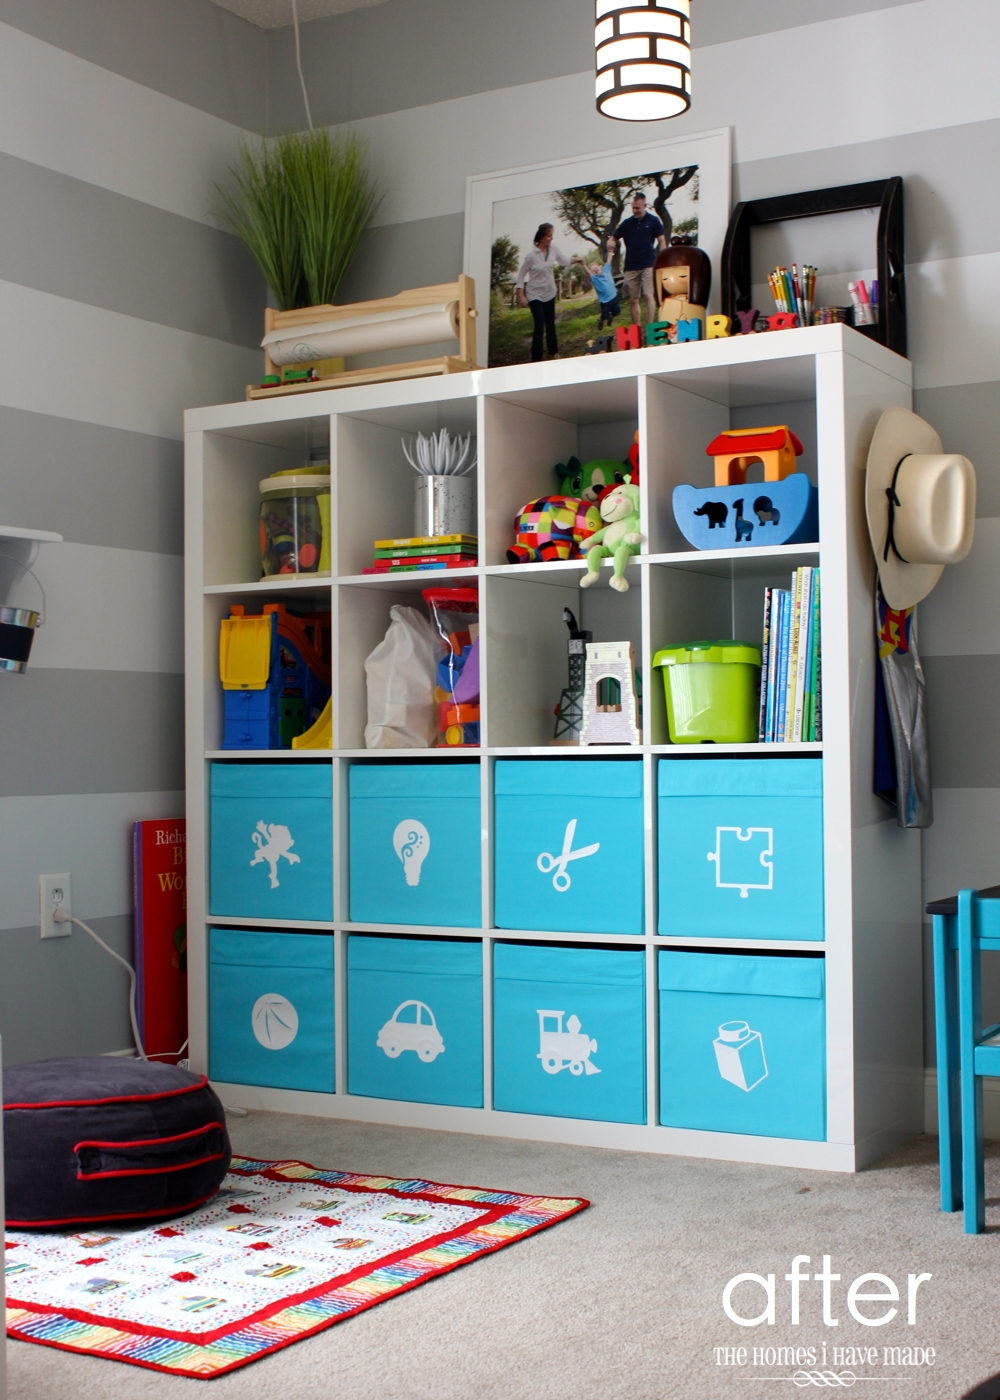 Toy Storage in an IKEA Expedit | The Homes I Have Made